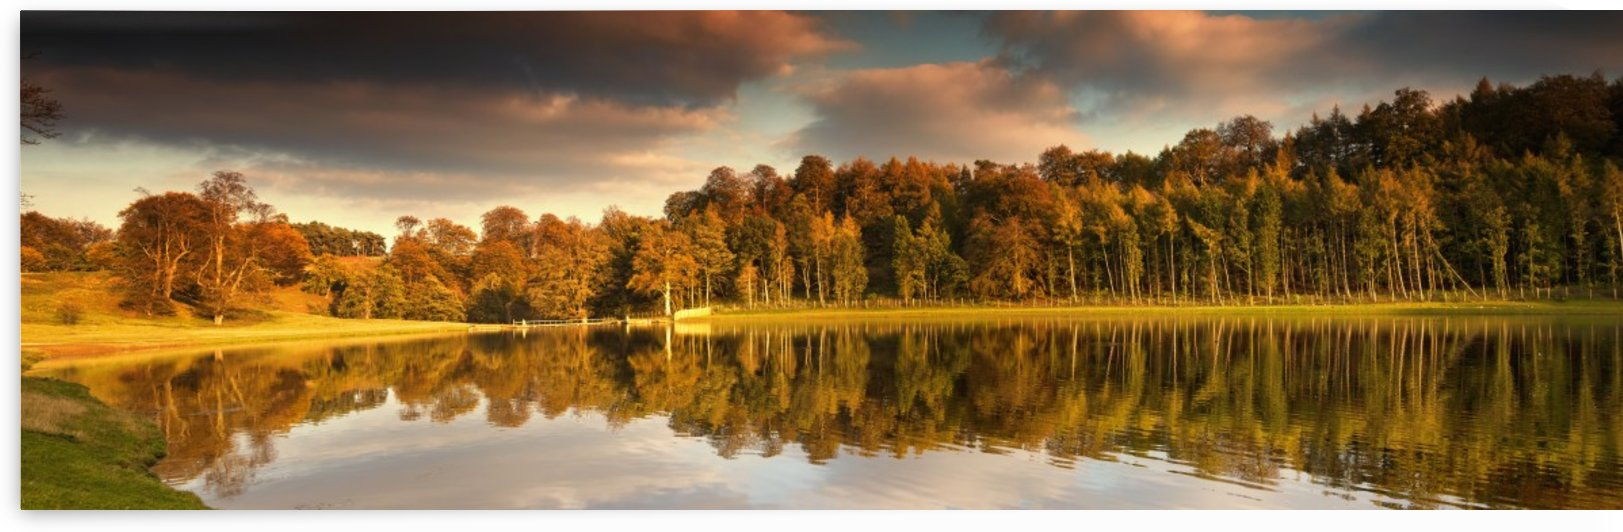 Trees Lining The Water's Edge Reflected In The Water In Autumn; North Yorkshire, England by PacificStock